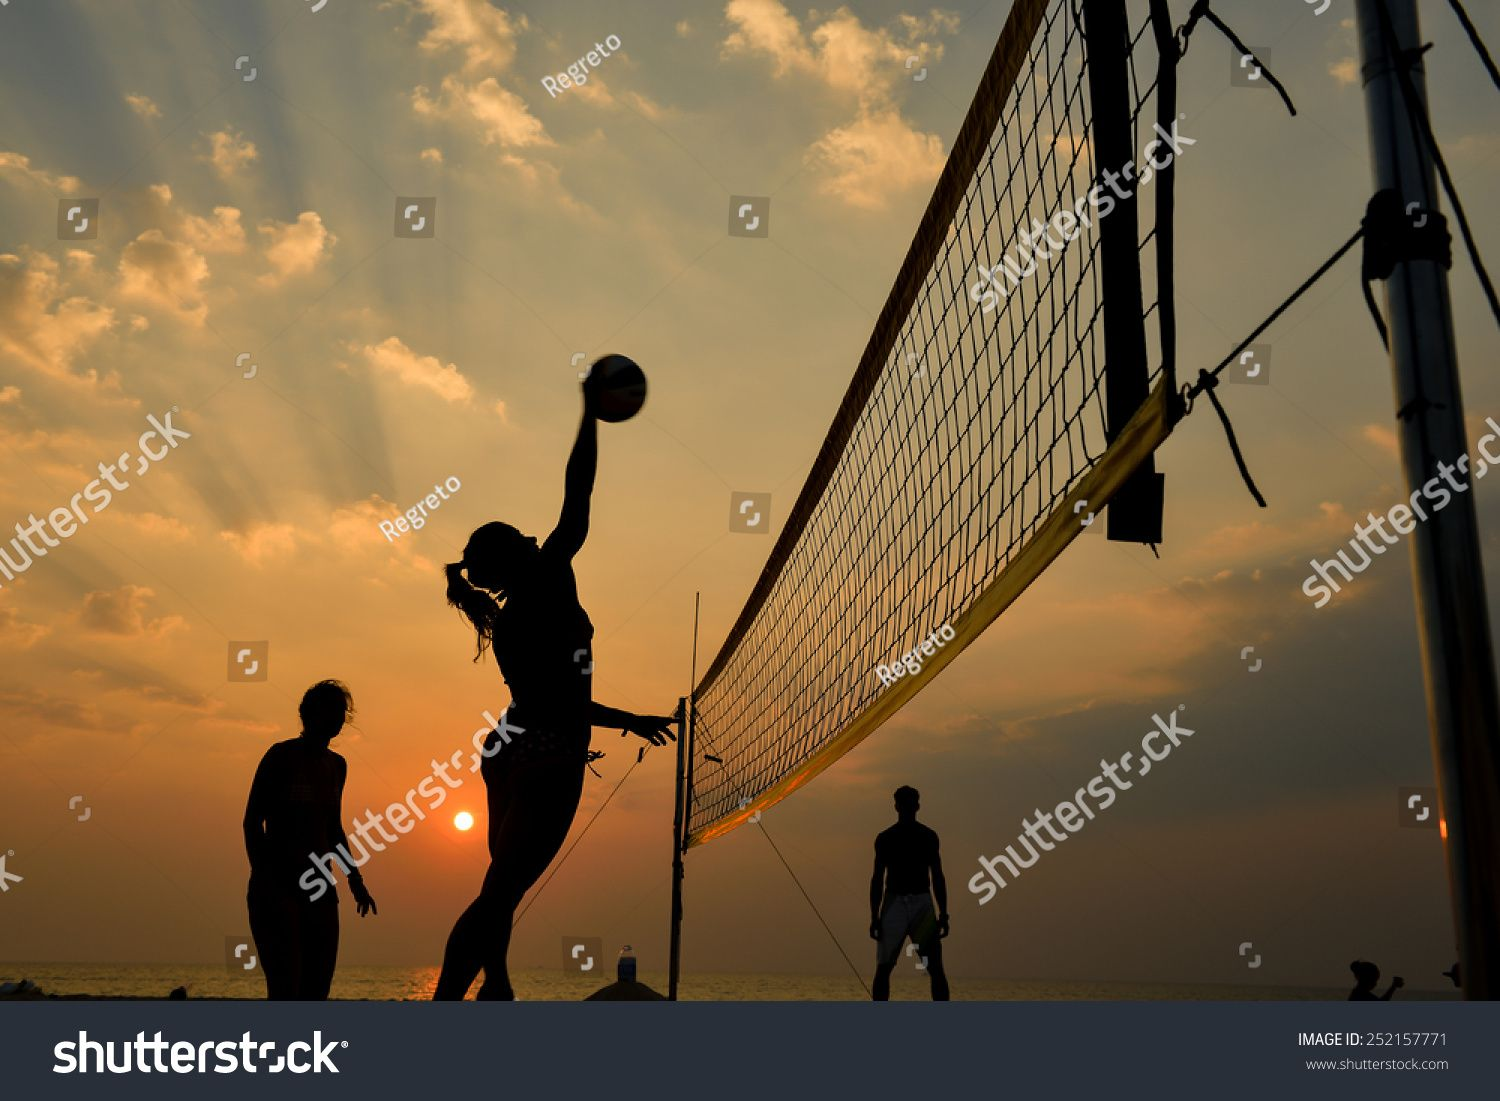 Beach Volleyball Silhouette Sunset Motion Blurred Royalty Free Image Photo In 2020 Volleyball Silhouette Motion Blur Beach Volleyball